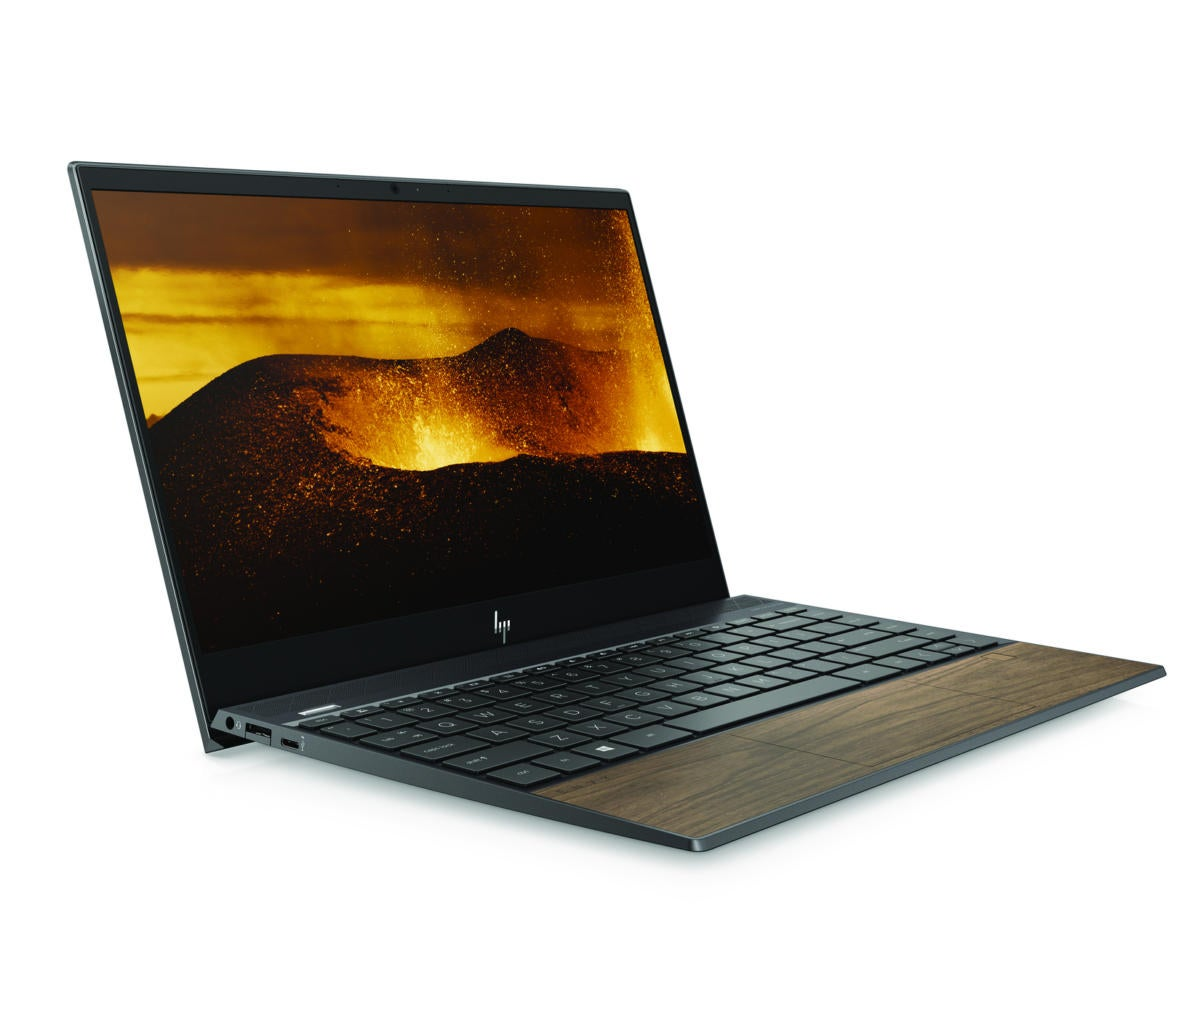 hp envy 13 nightfallblack frontright